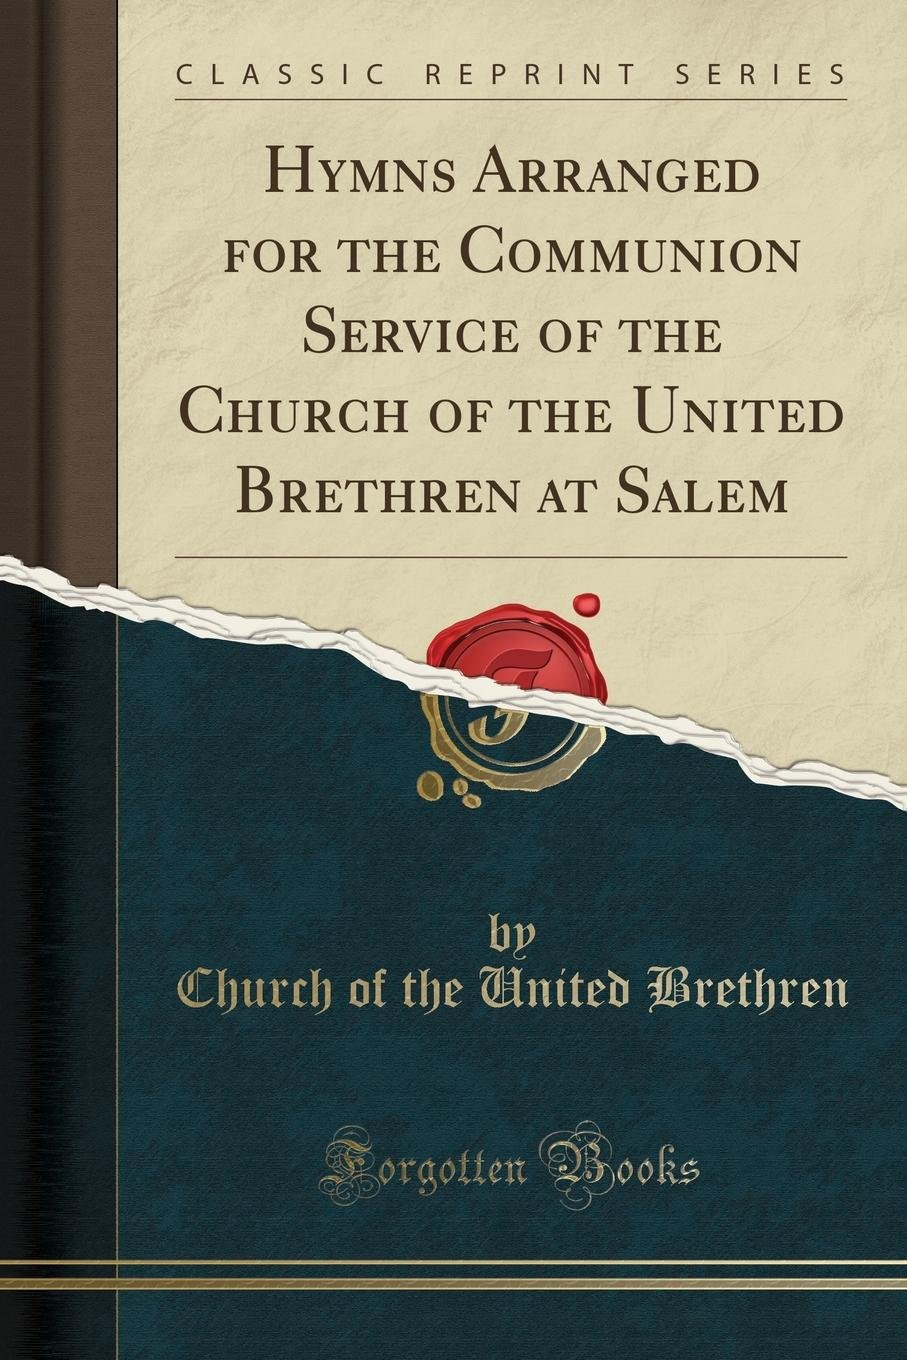 Hymns Arranged for the Communion Service of the Church of the United Brethren at Salem (Classic Reprint) pdf